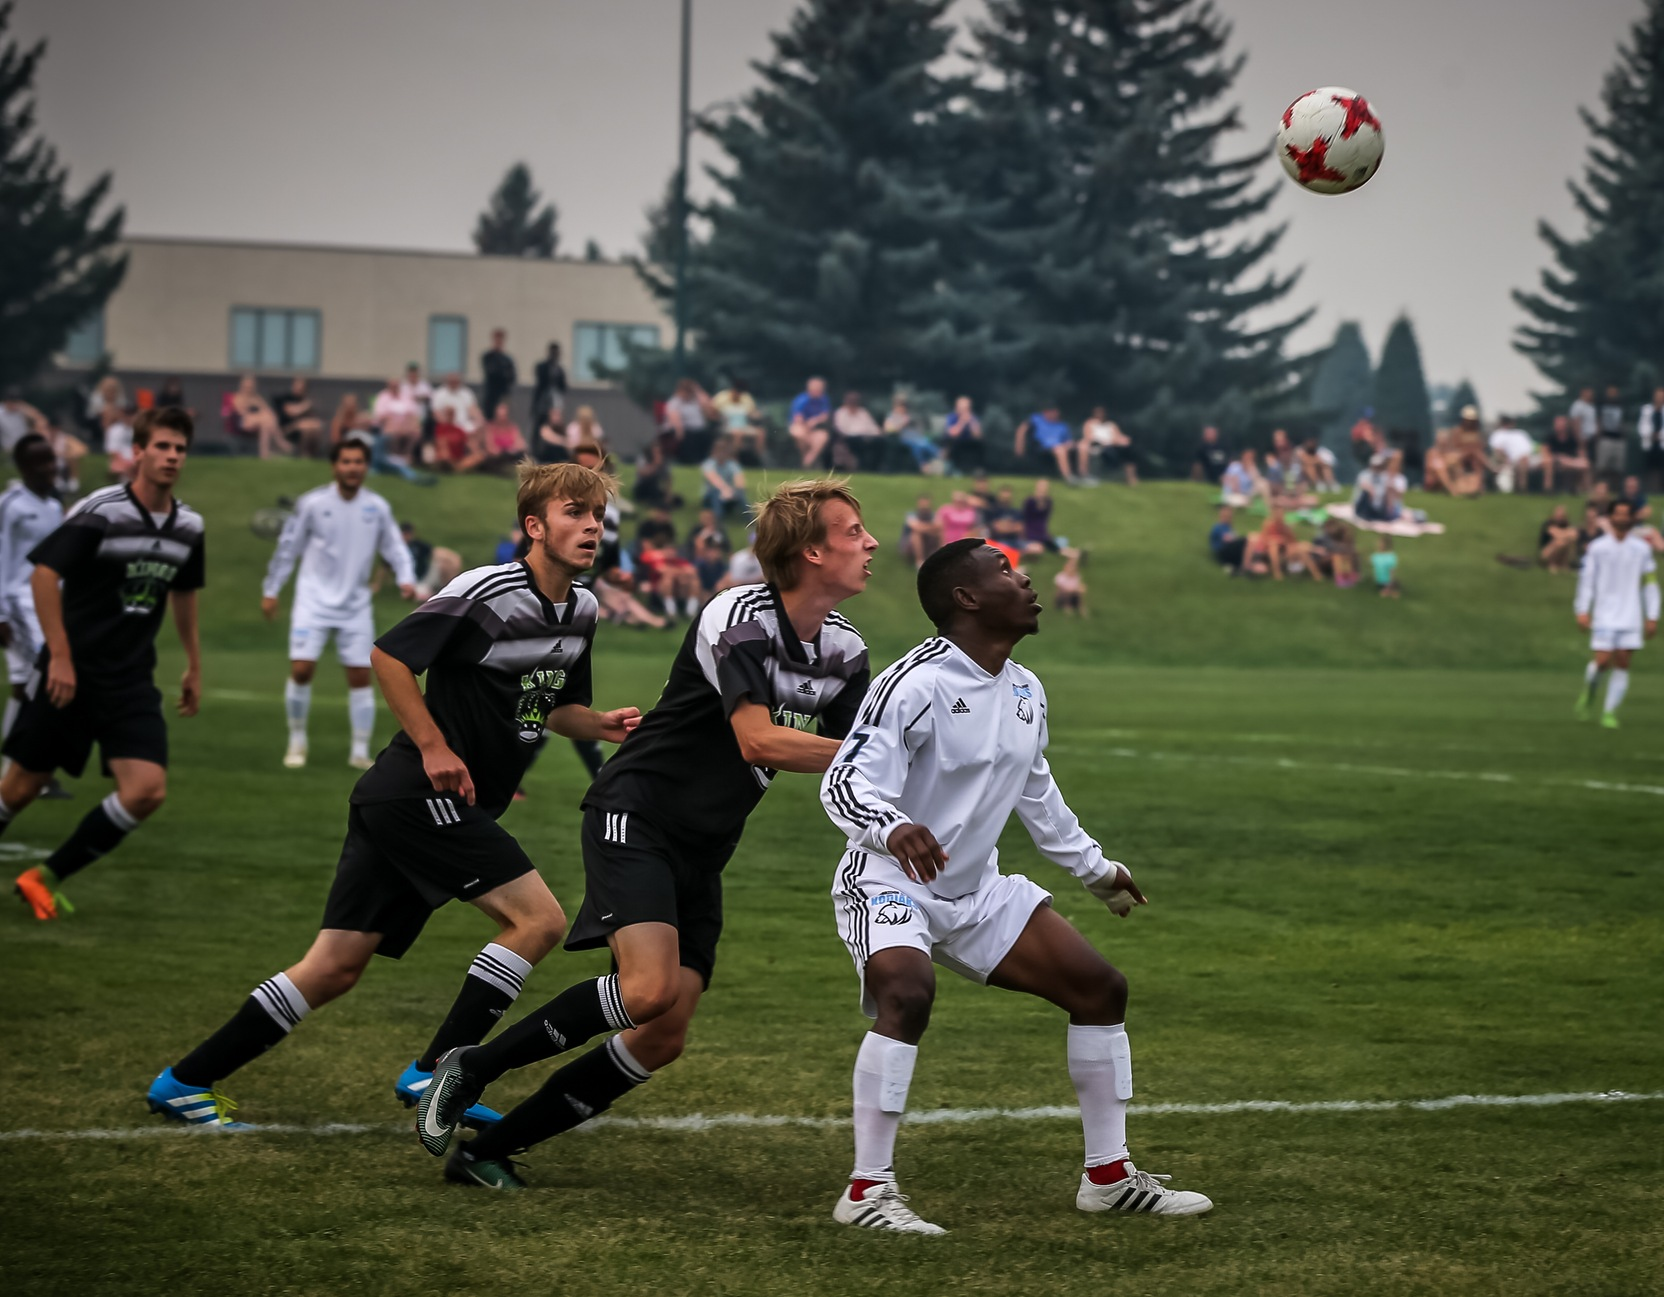 MSOC | Kodiaks Overpower Red Deer in 3-0 Win